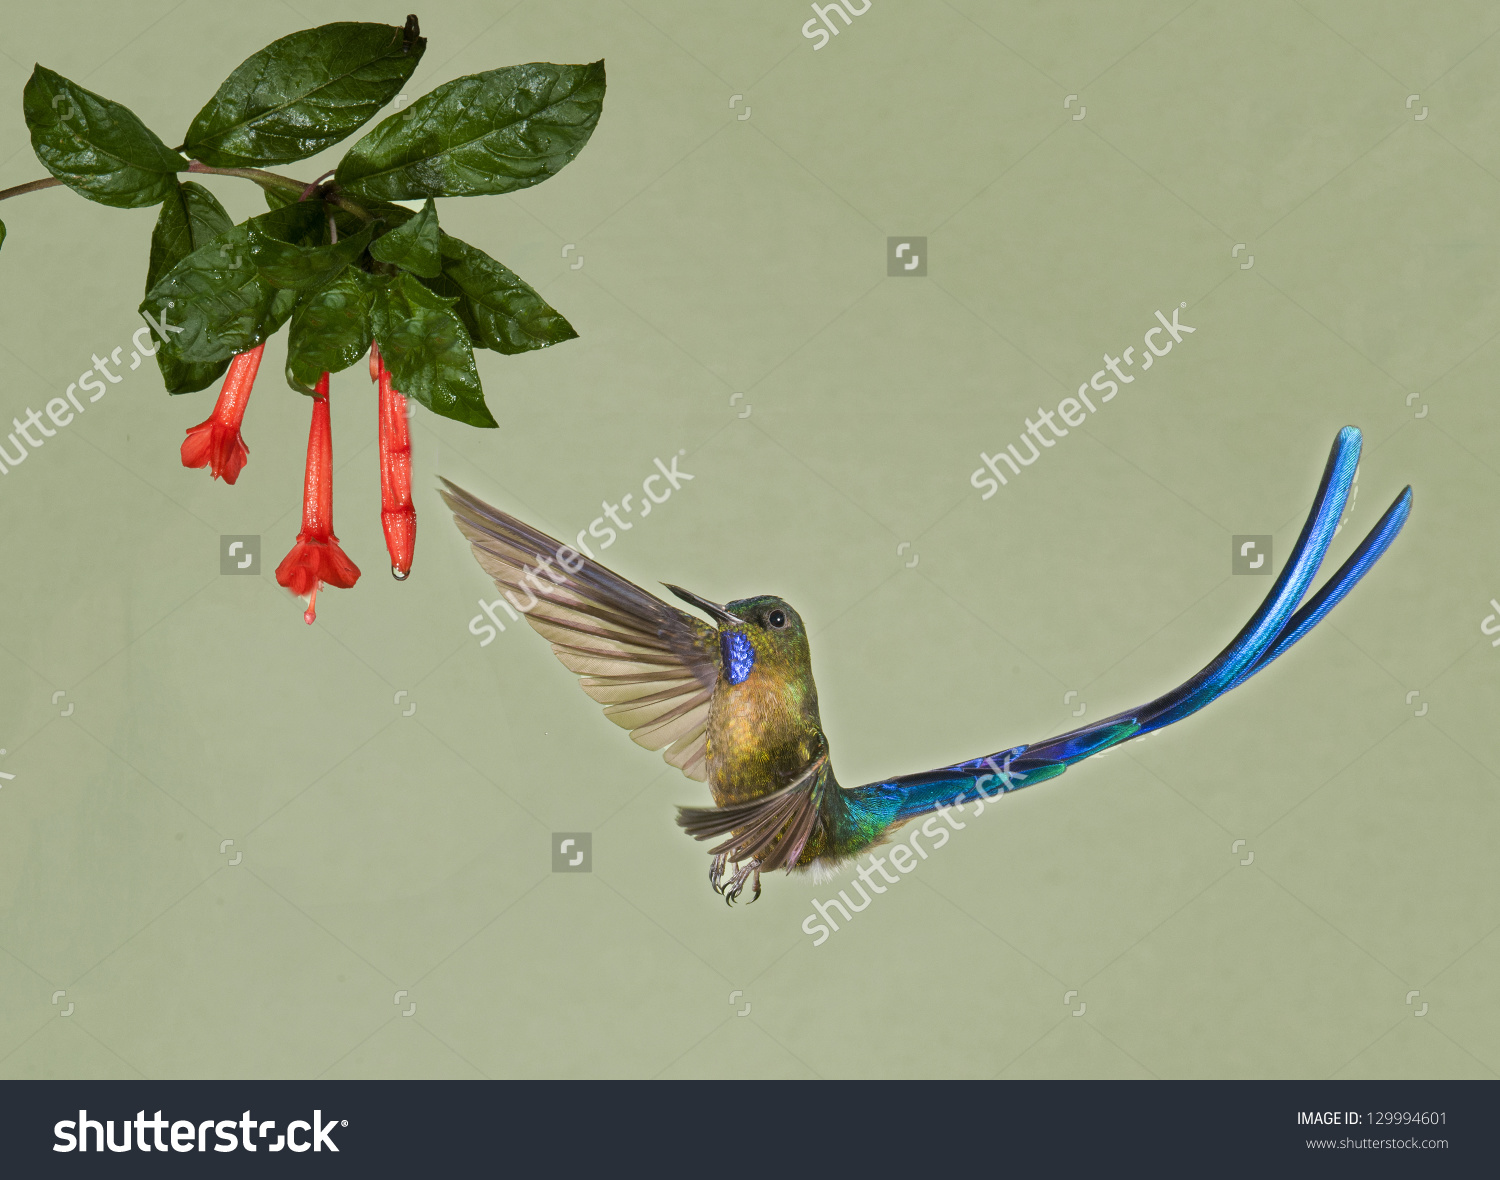 Long-tailed Sylph clipart #7, Download drawings